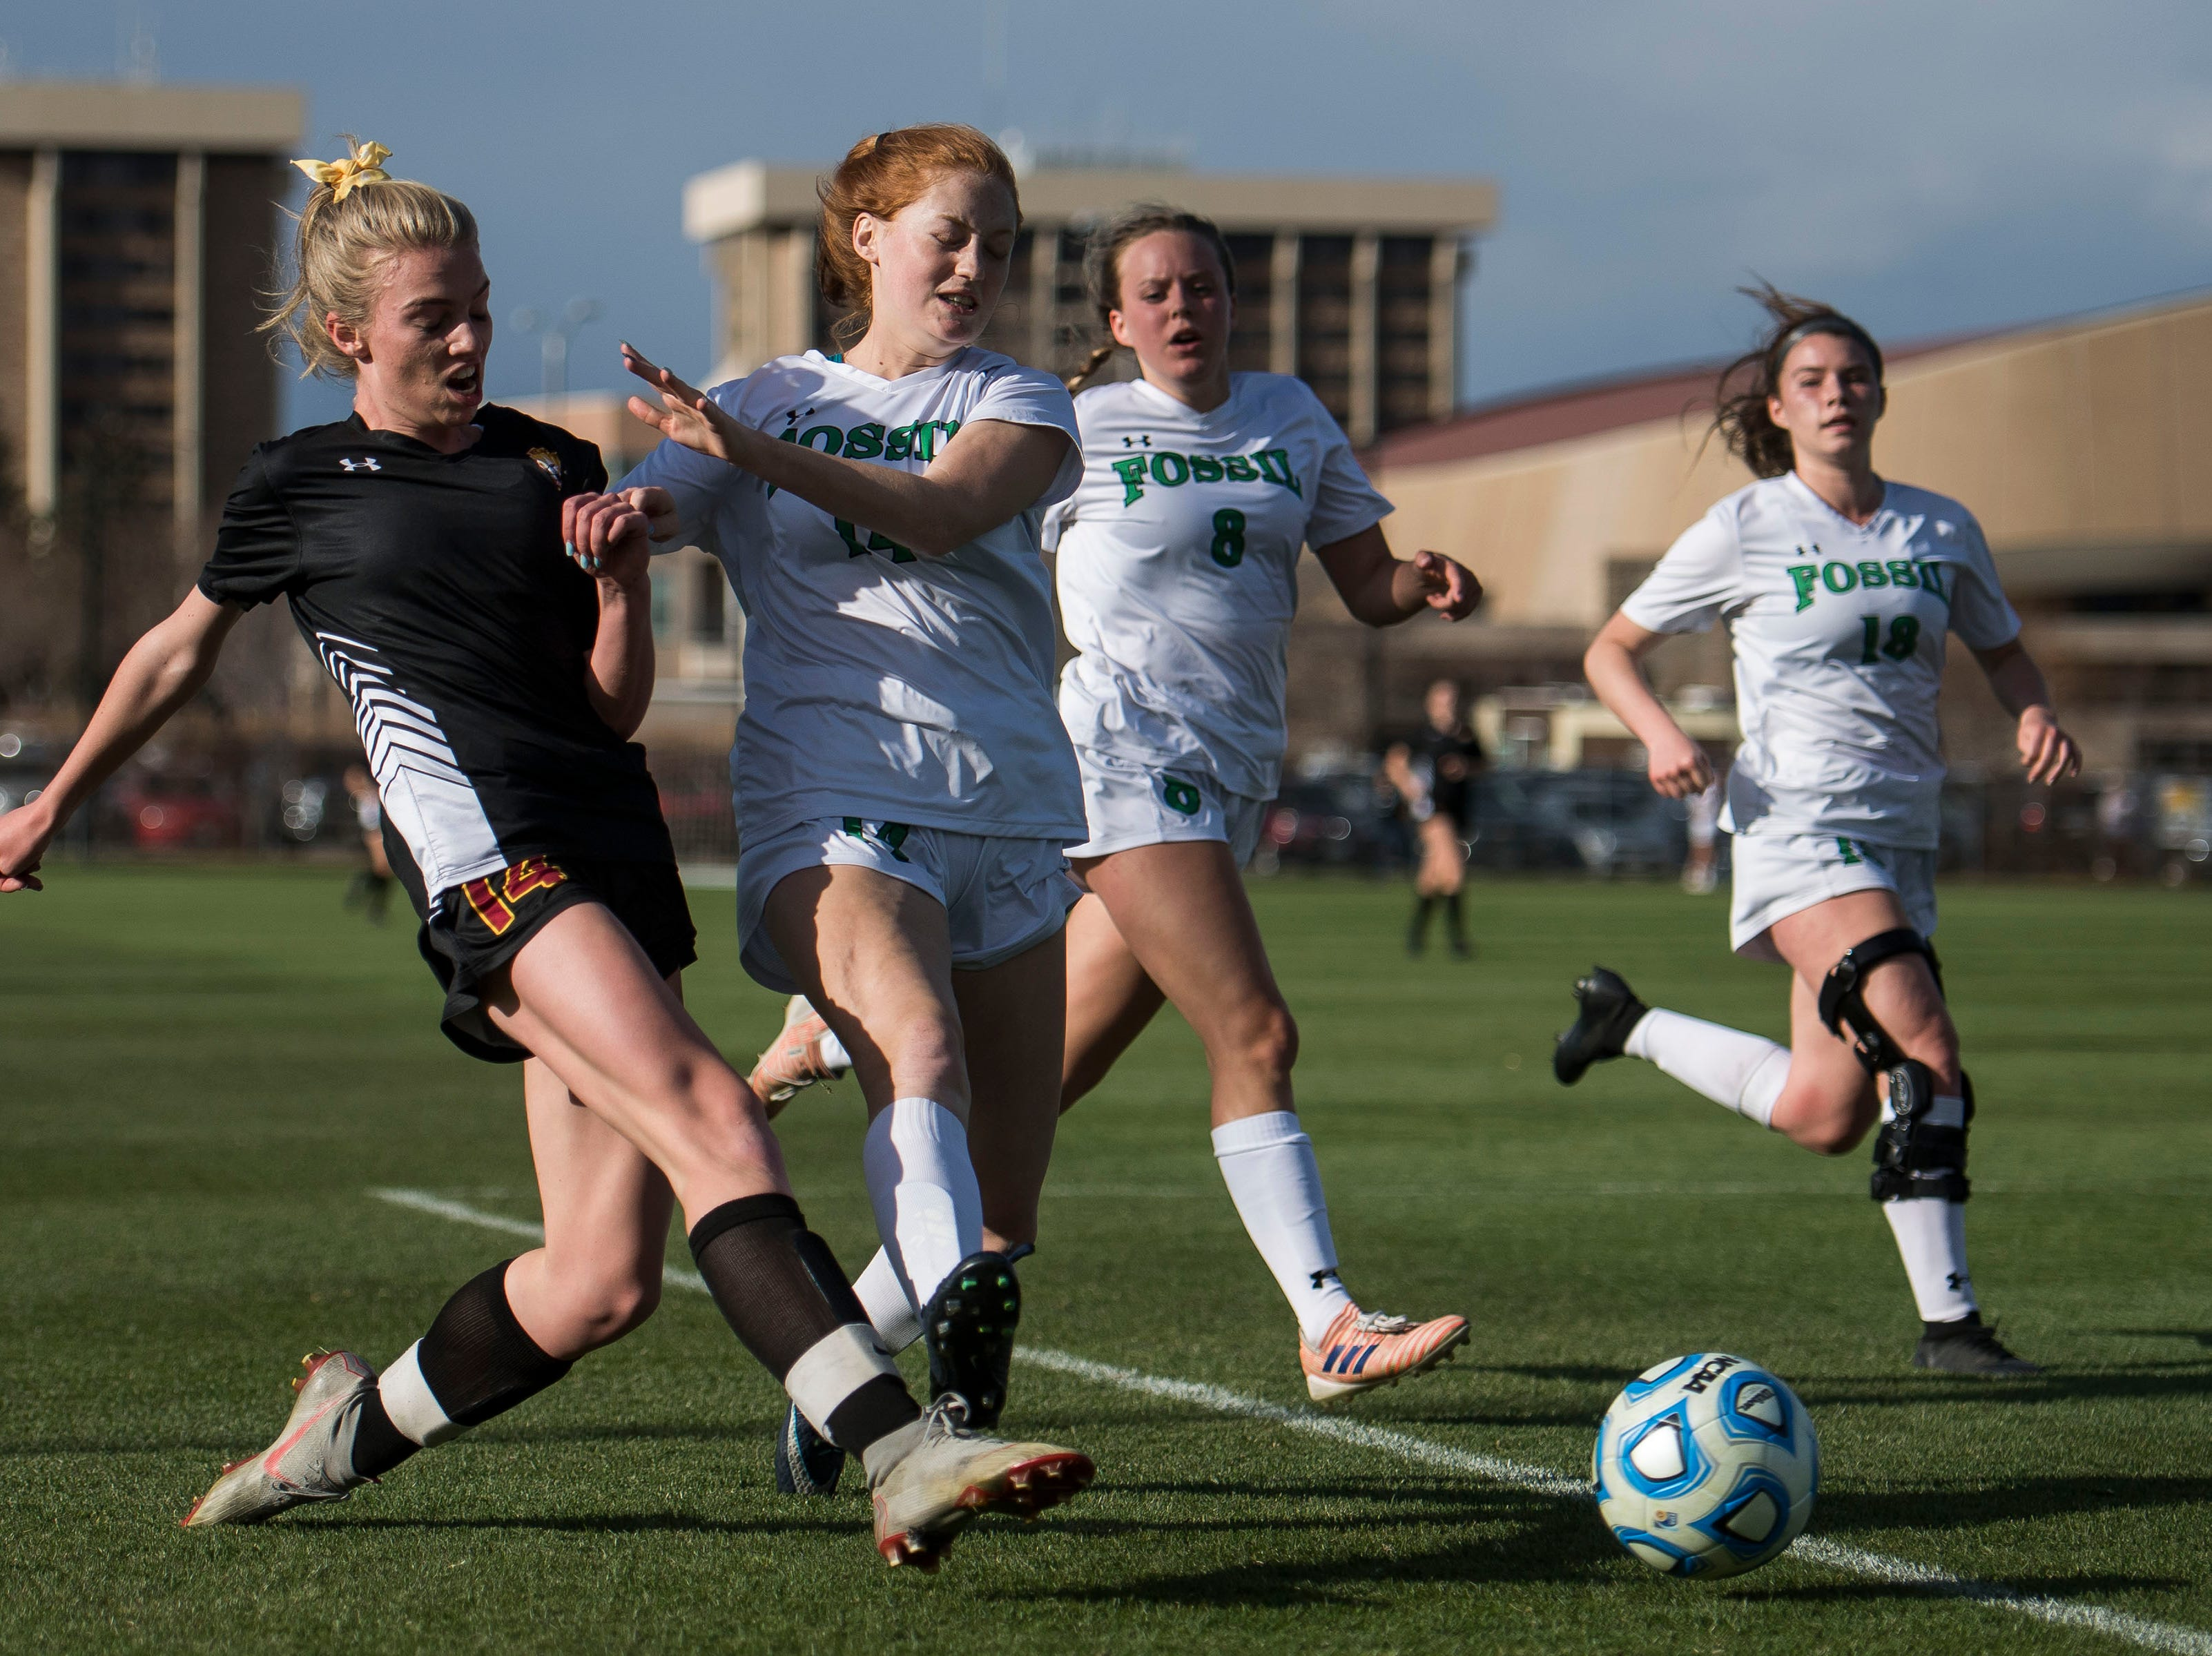 Rocky Mountain High School sophomore Mya Johnson (14) gets a shot past Fossil Ridge High School freshman Dana Leary (14) on Friday, April 4, 2019, at Colorado State University's soccer field in Fort Collins, Colo.